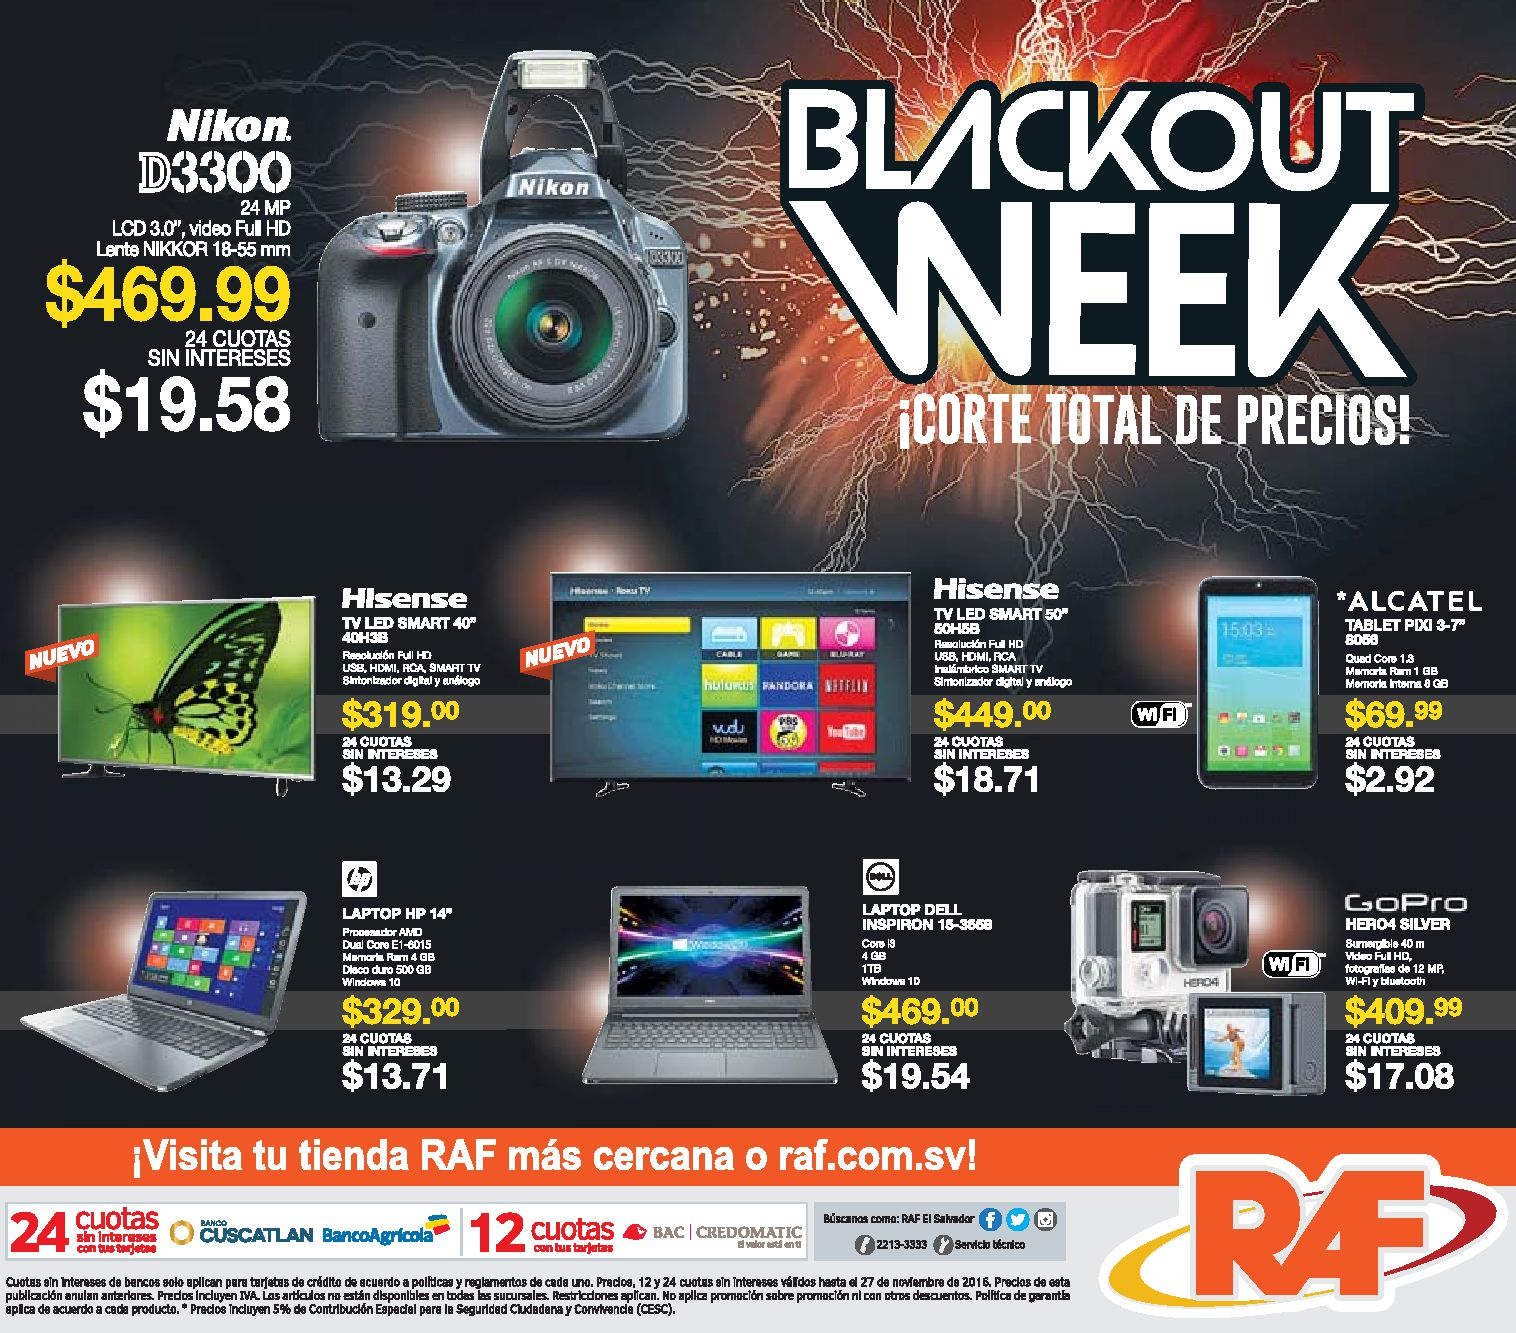 productos-tecnologicos-en-ofertas-raf-blackout-week-2016